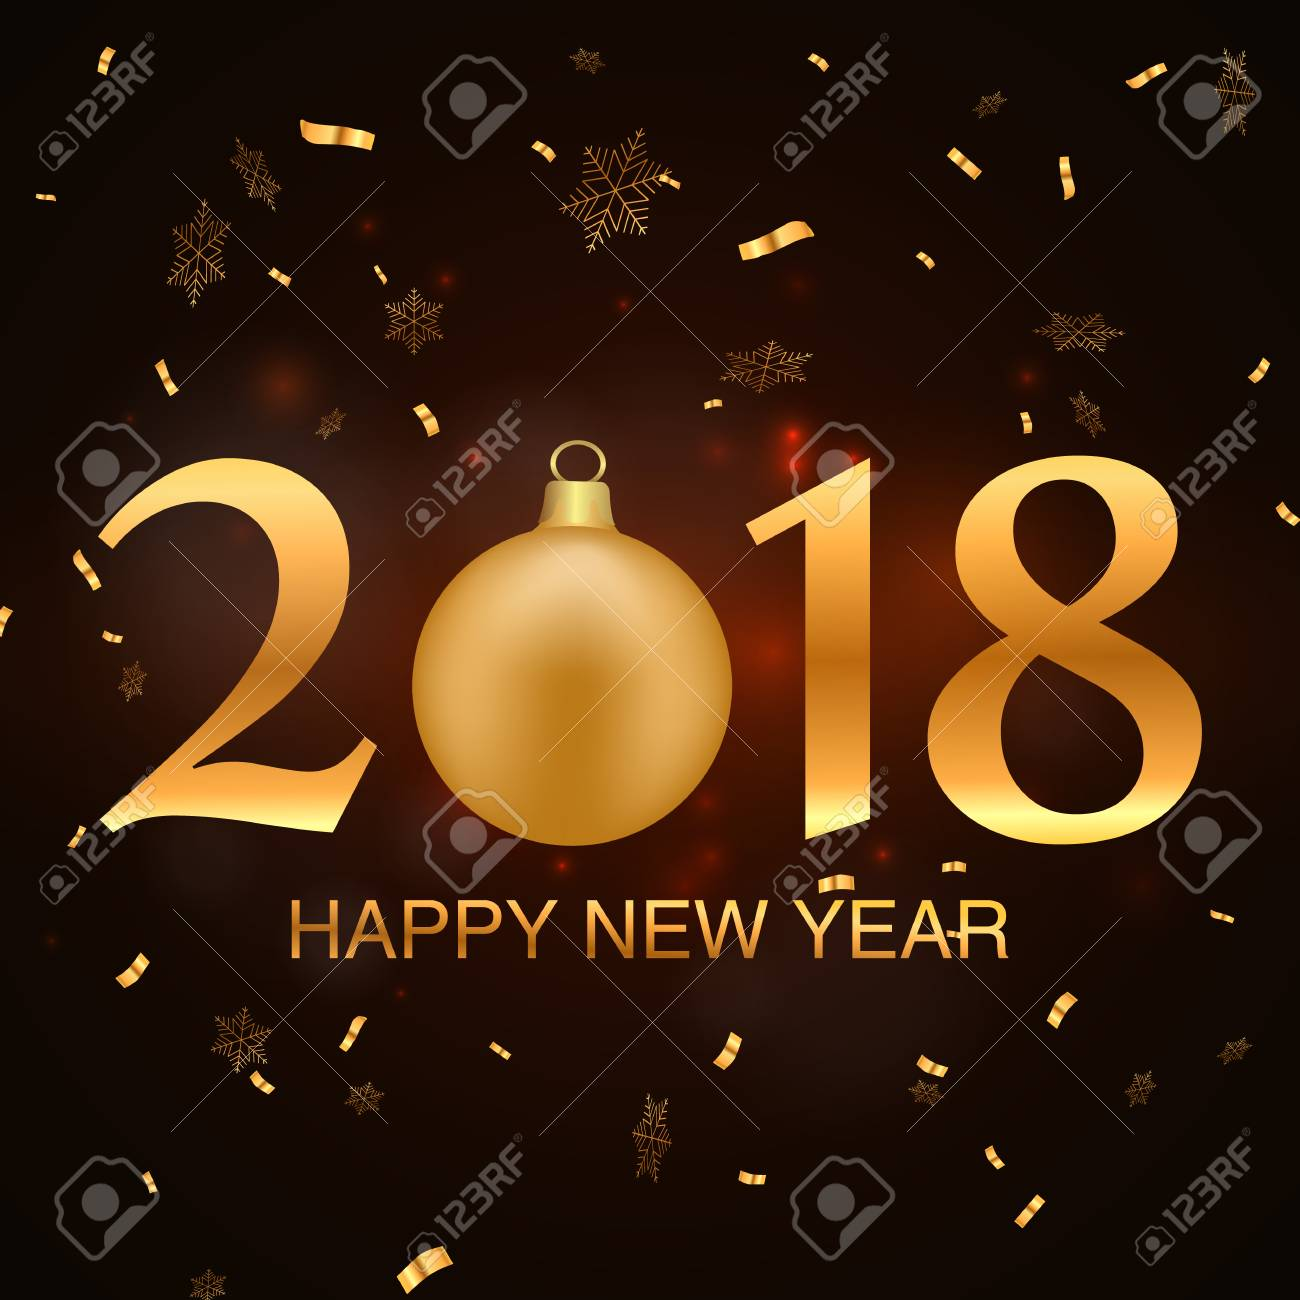 glitter background with sparkles for happy new year card stock vector 92420792